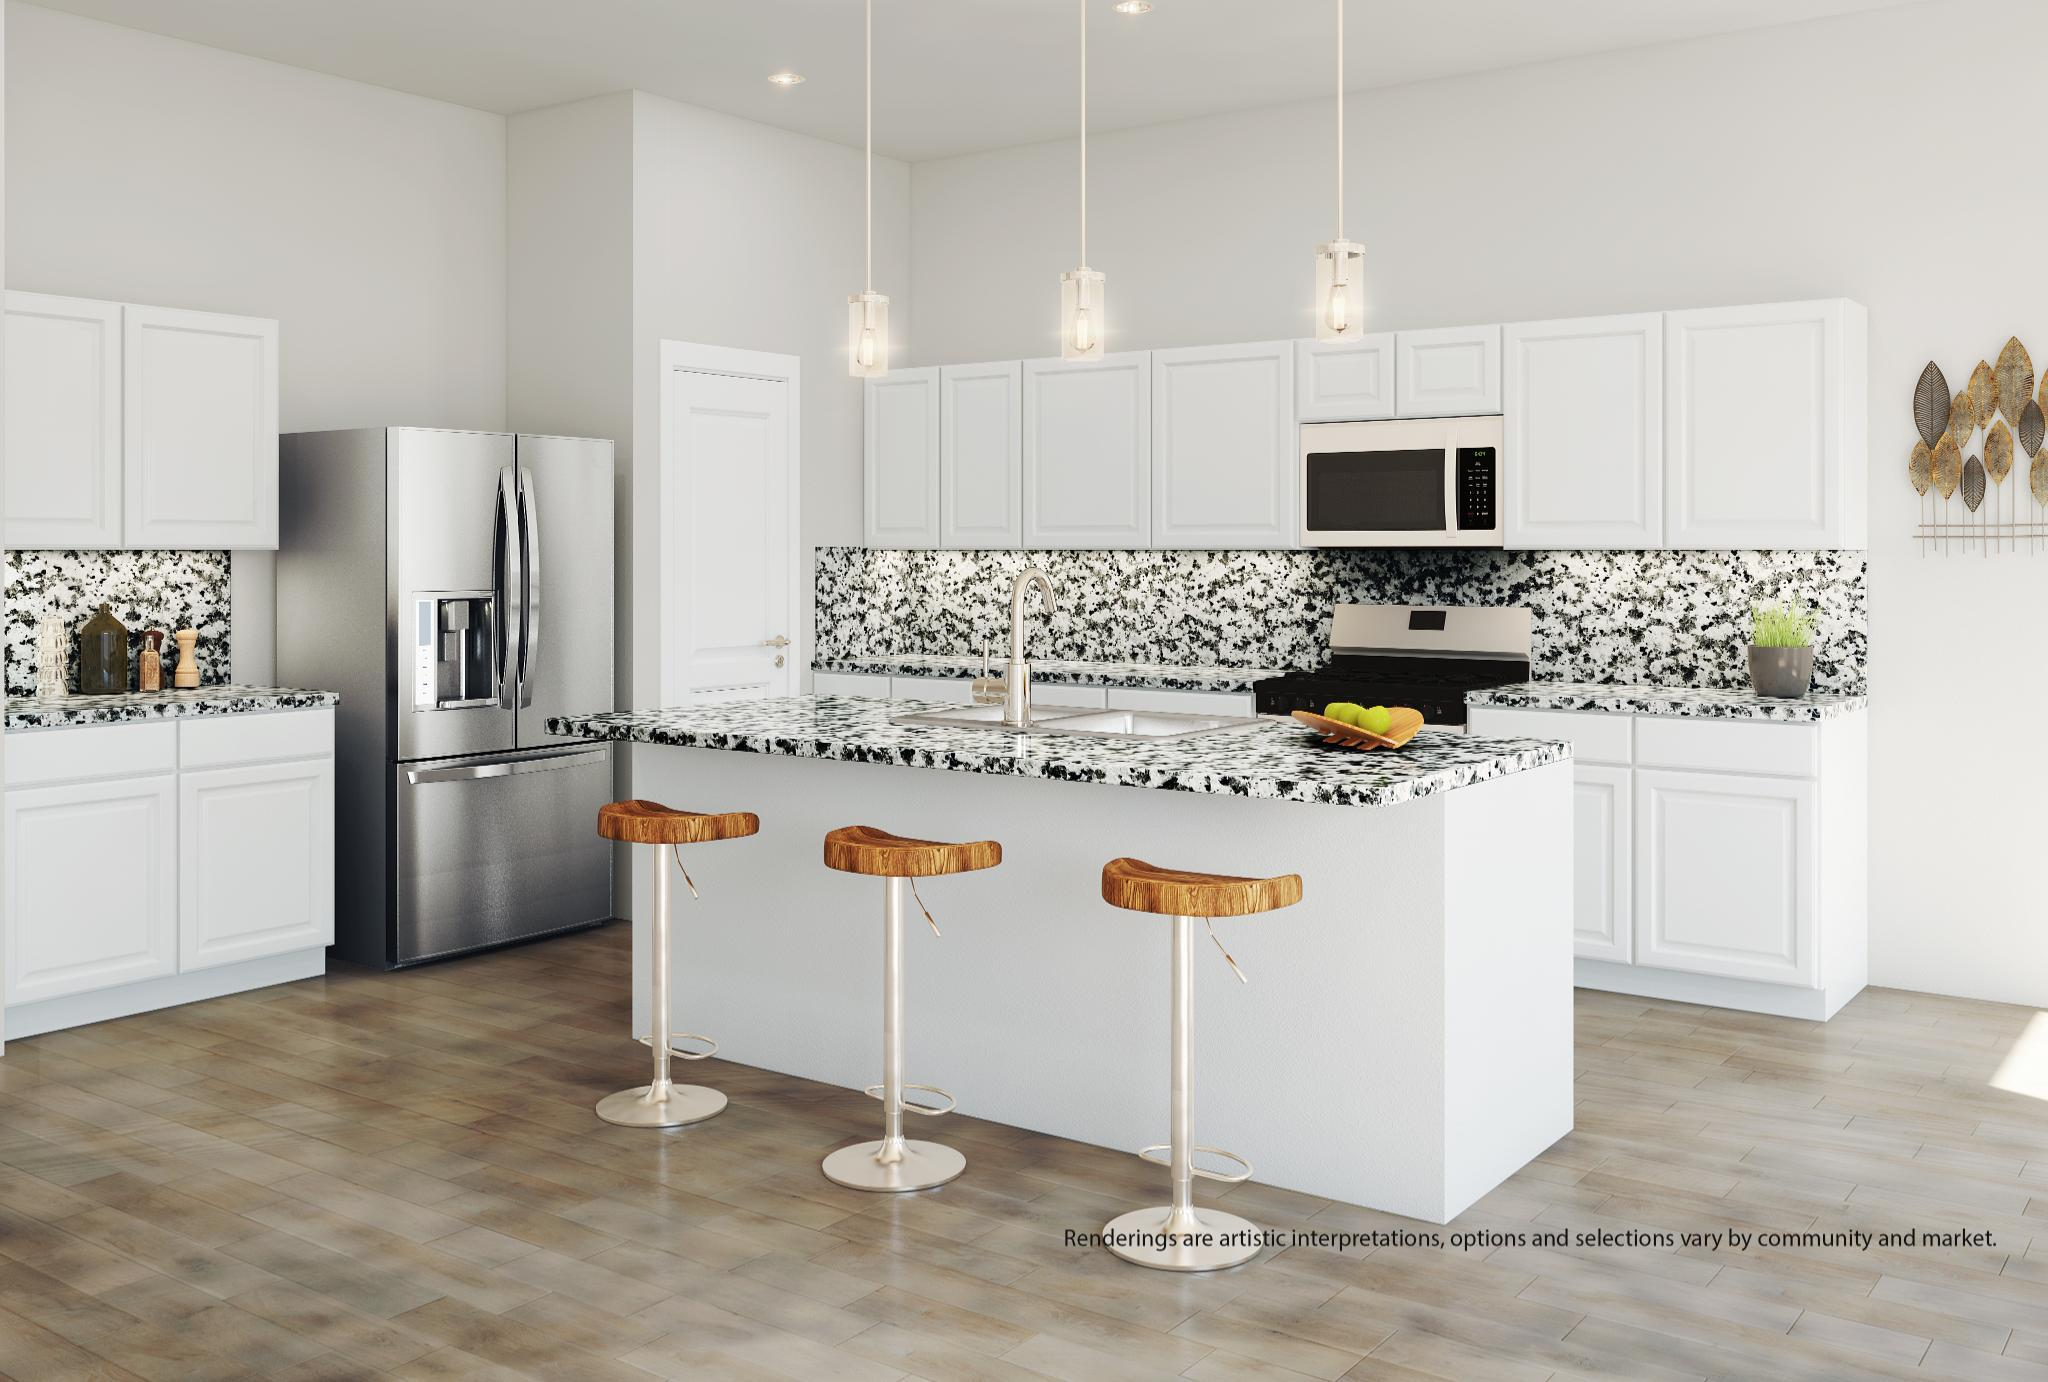 Kitchen featured in the Willow By Kindred Homes in San Antonio, TX